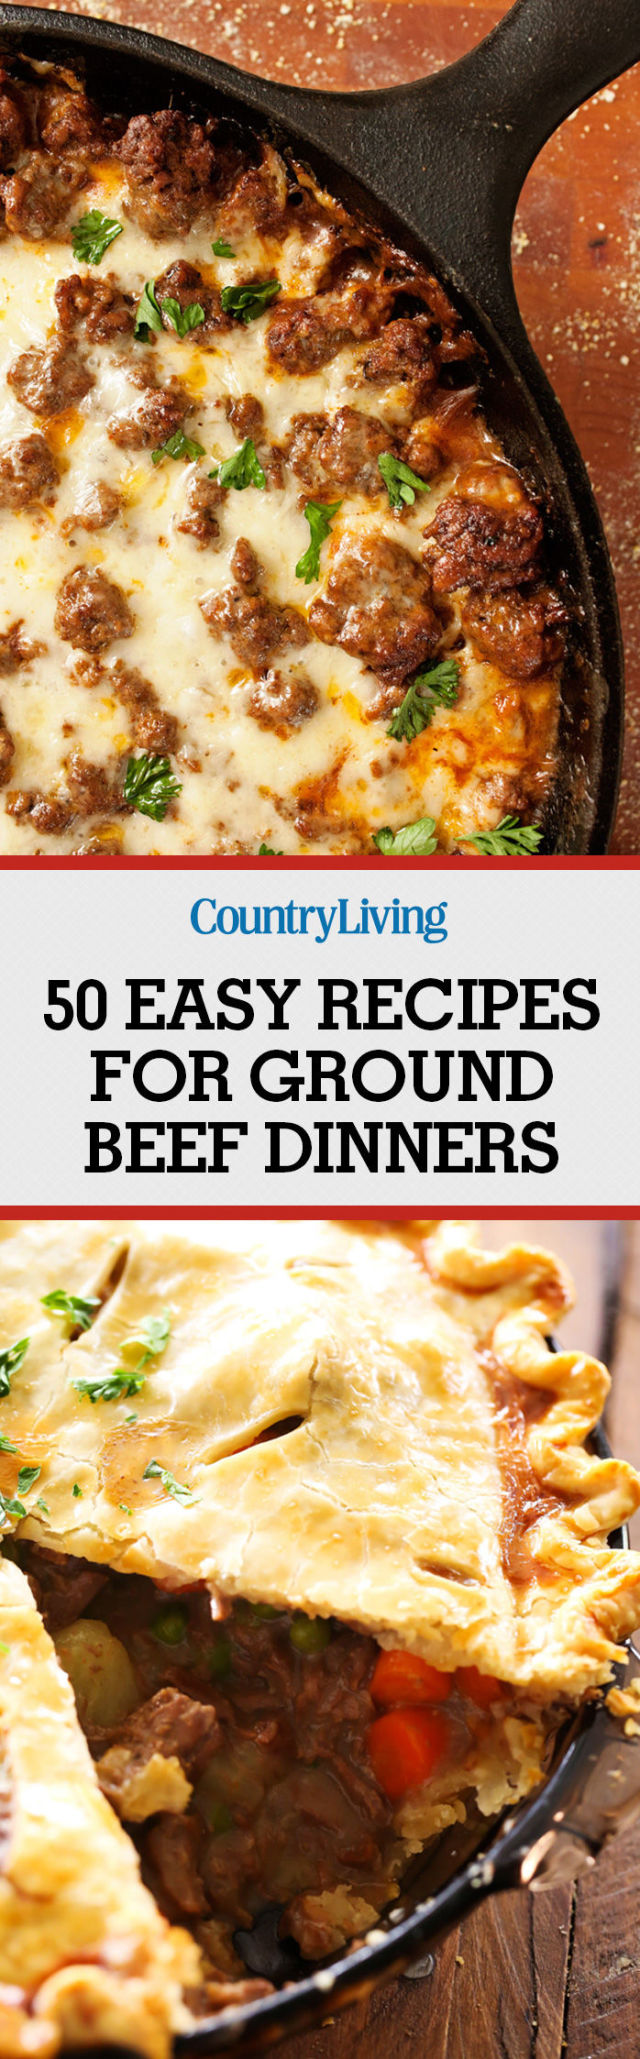 Great dinner recipes easy